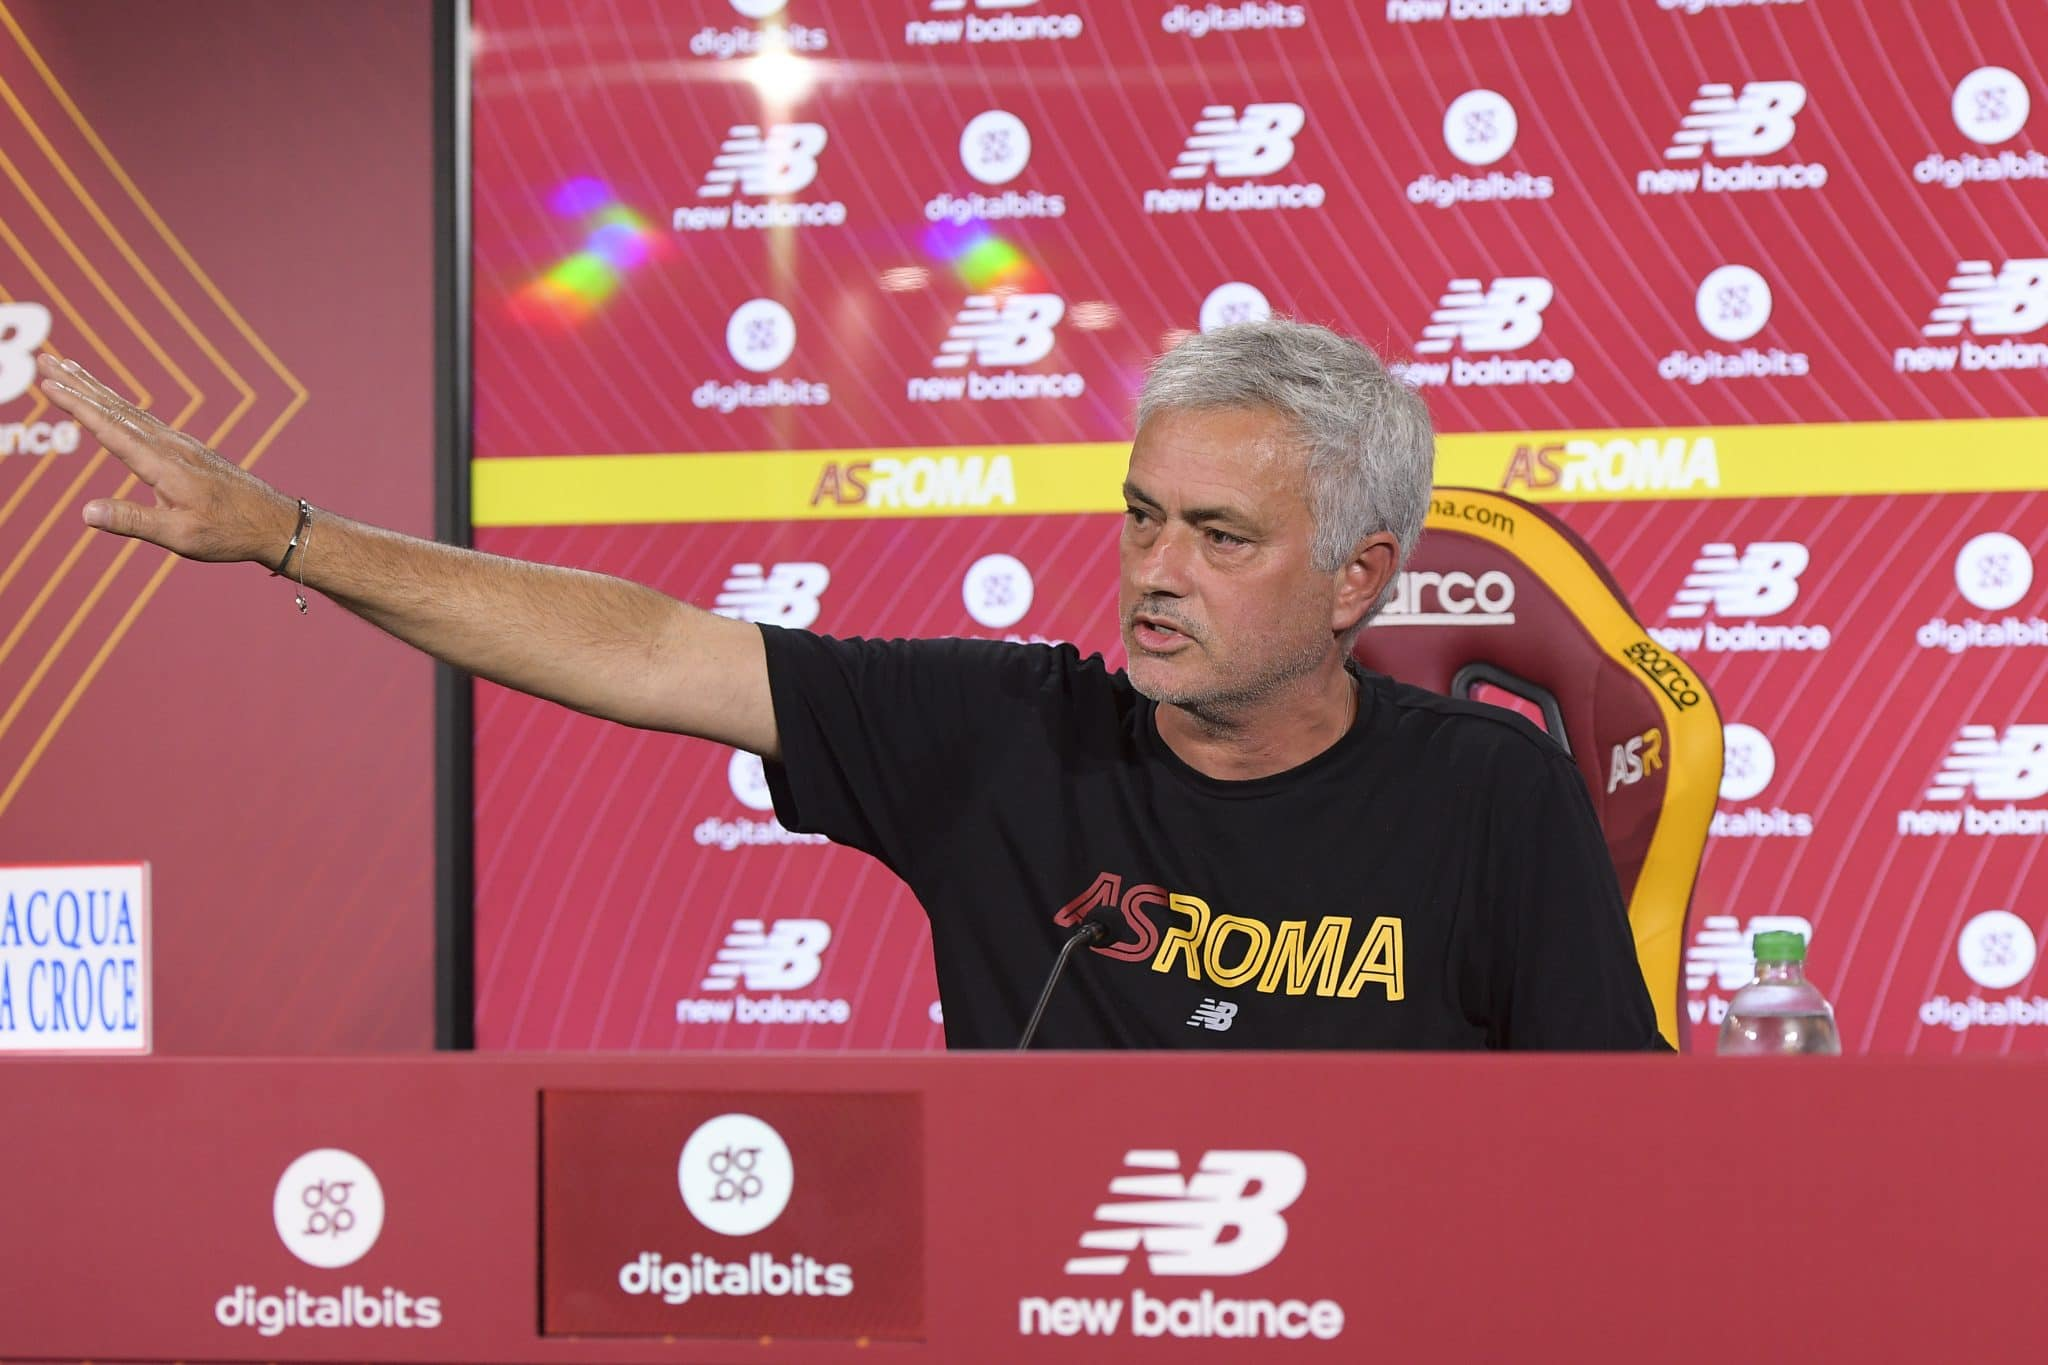 ROME, ITALY - OCTOBER 23: Josè Mourinho during an AS Roma press conference at Centro Sportivo Fulvio Bernardini on October 23, 2021 in Rome, Italy. (Photo by Luciano Rossi/AS Roma via Getty Images)